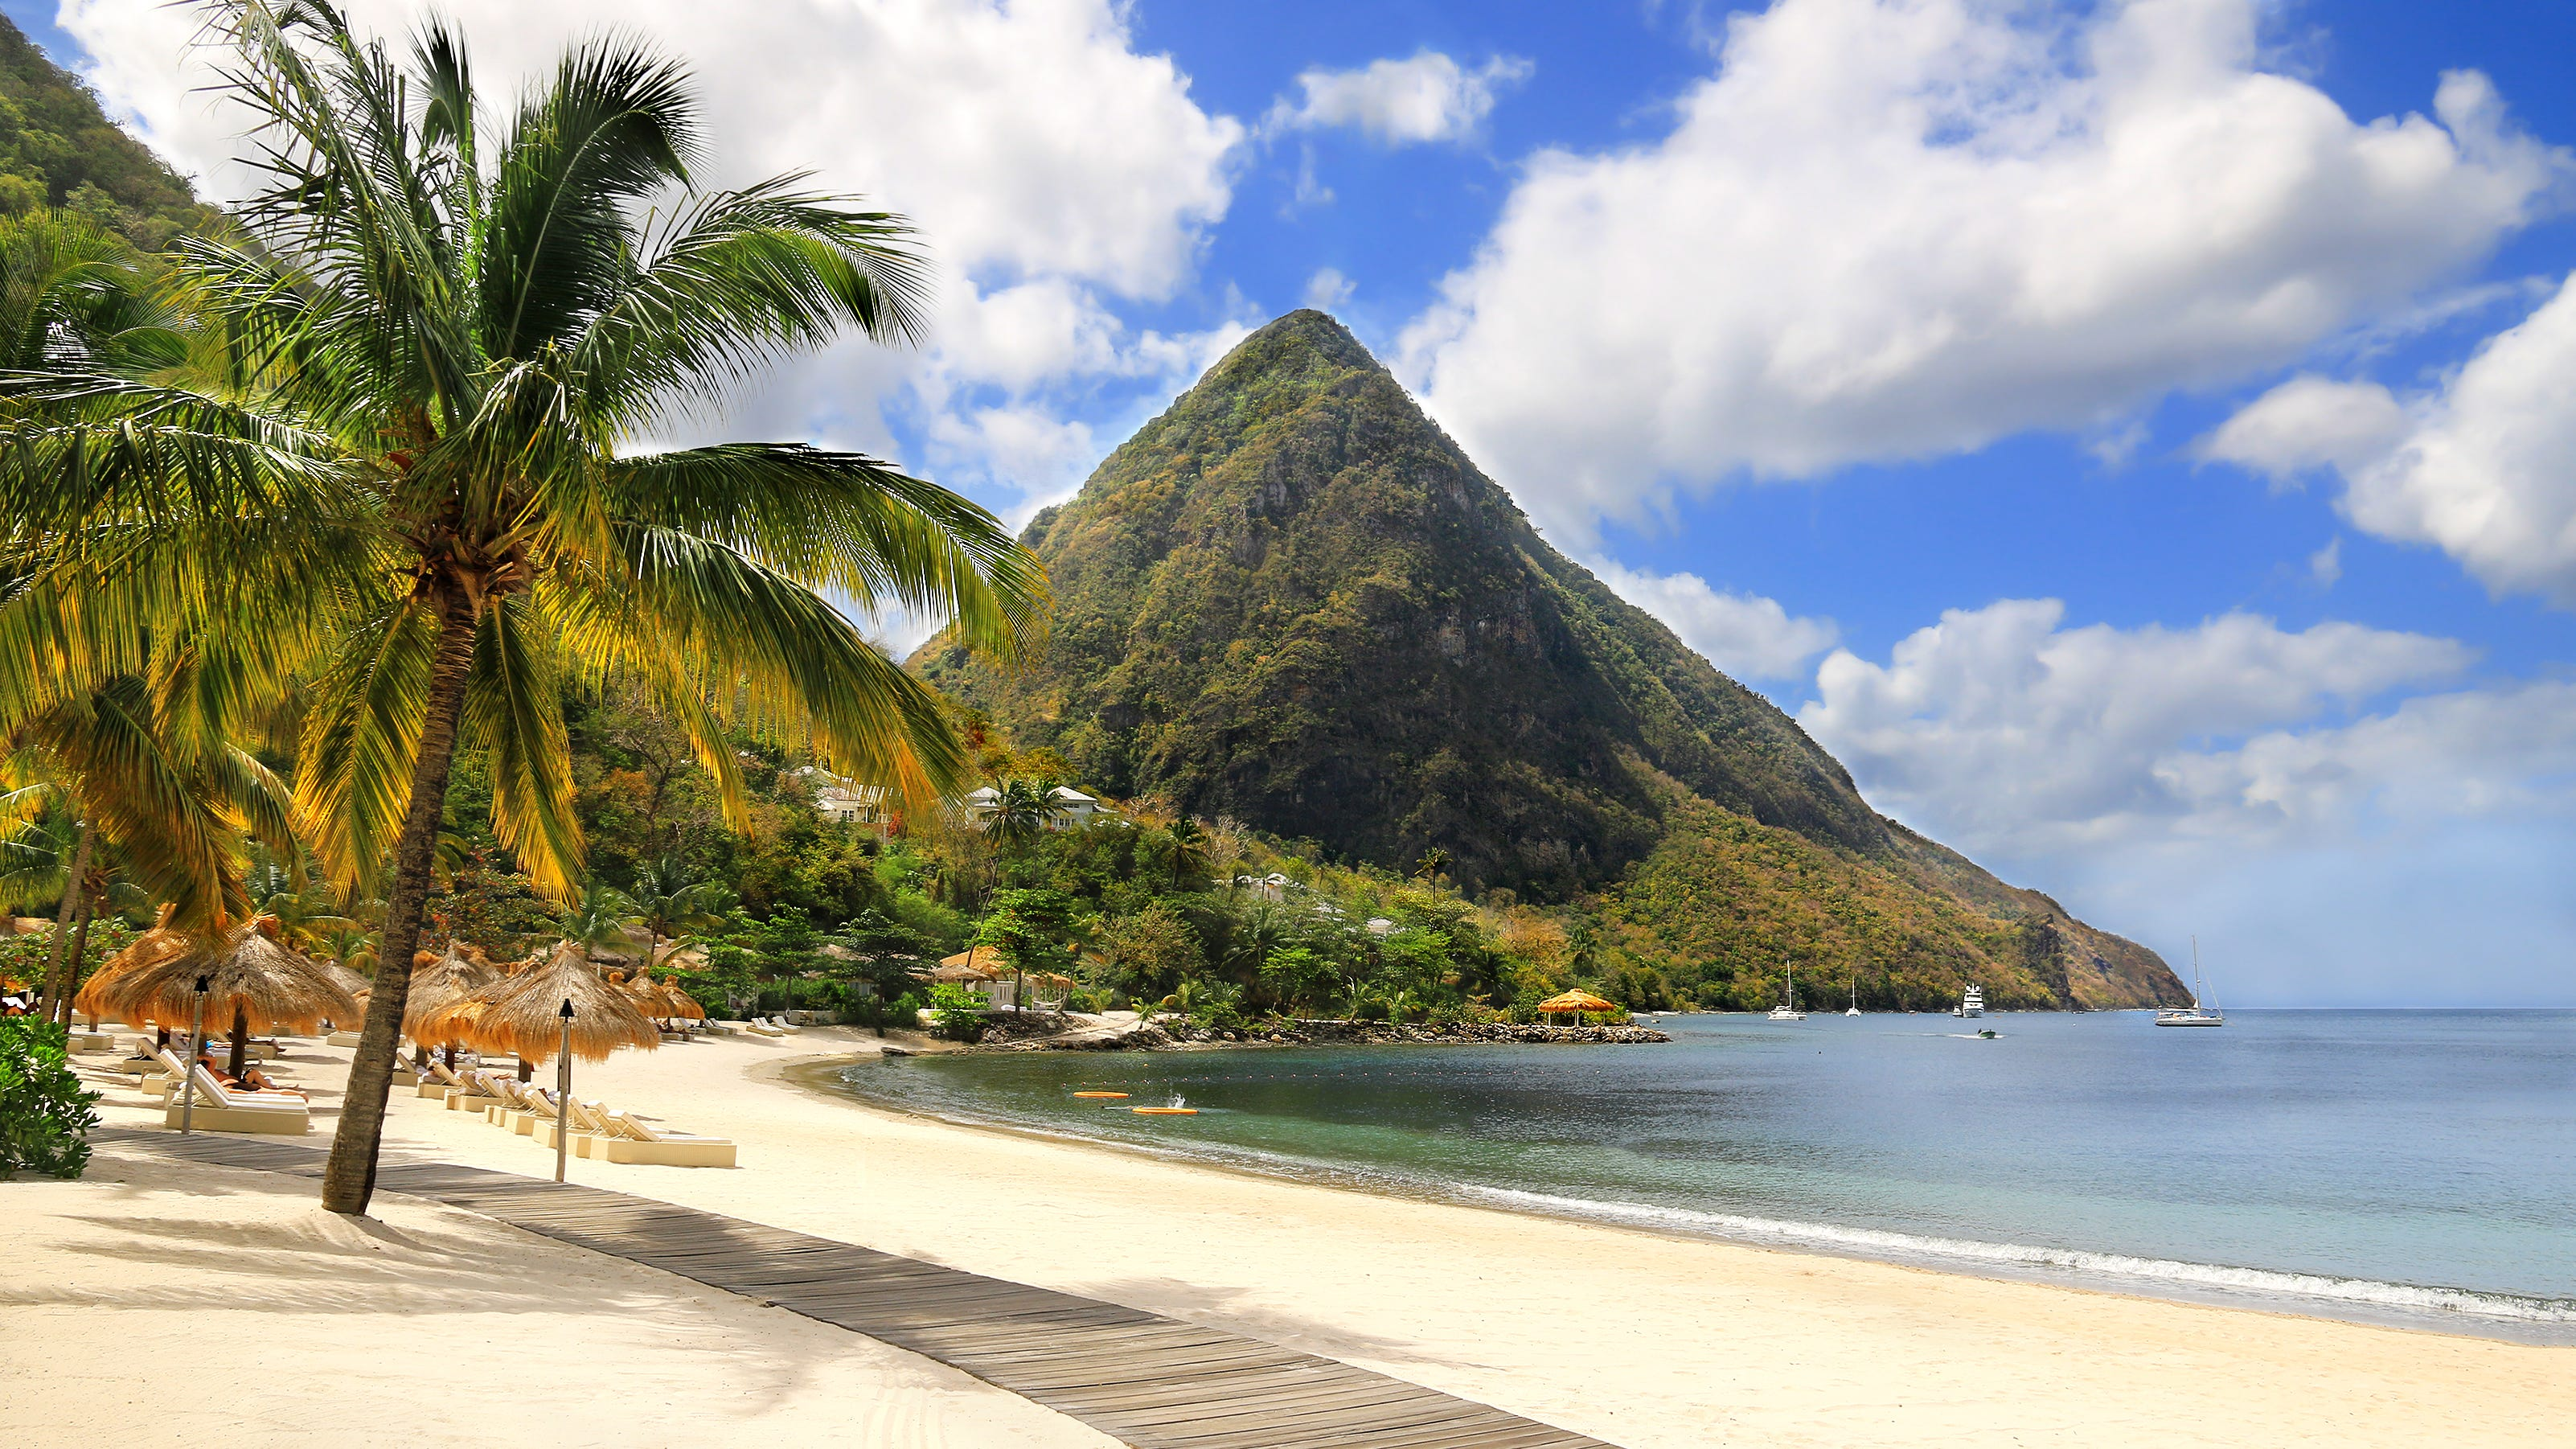 Set between St. Lucia's Twin Pitons, Sugar Beach offers Insta-worthy views as well as some of the island's best snorkeling.